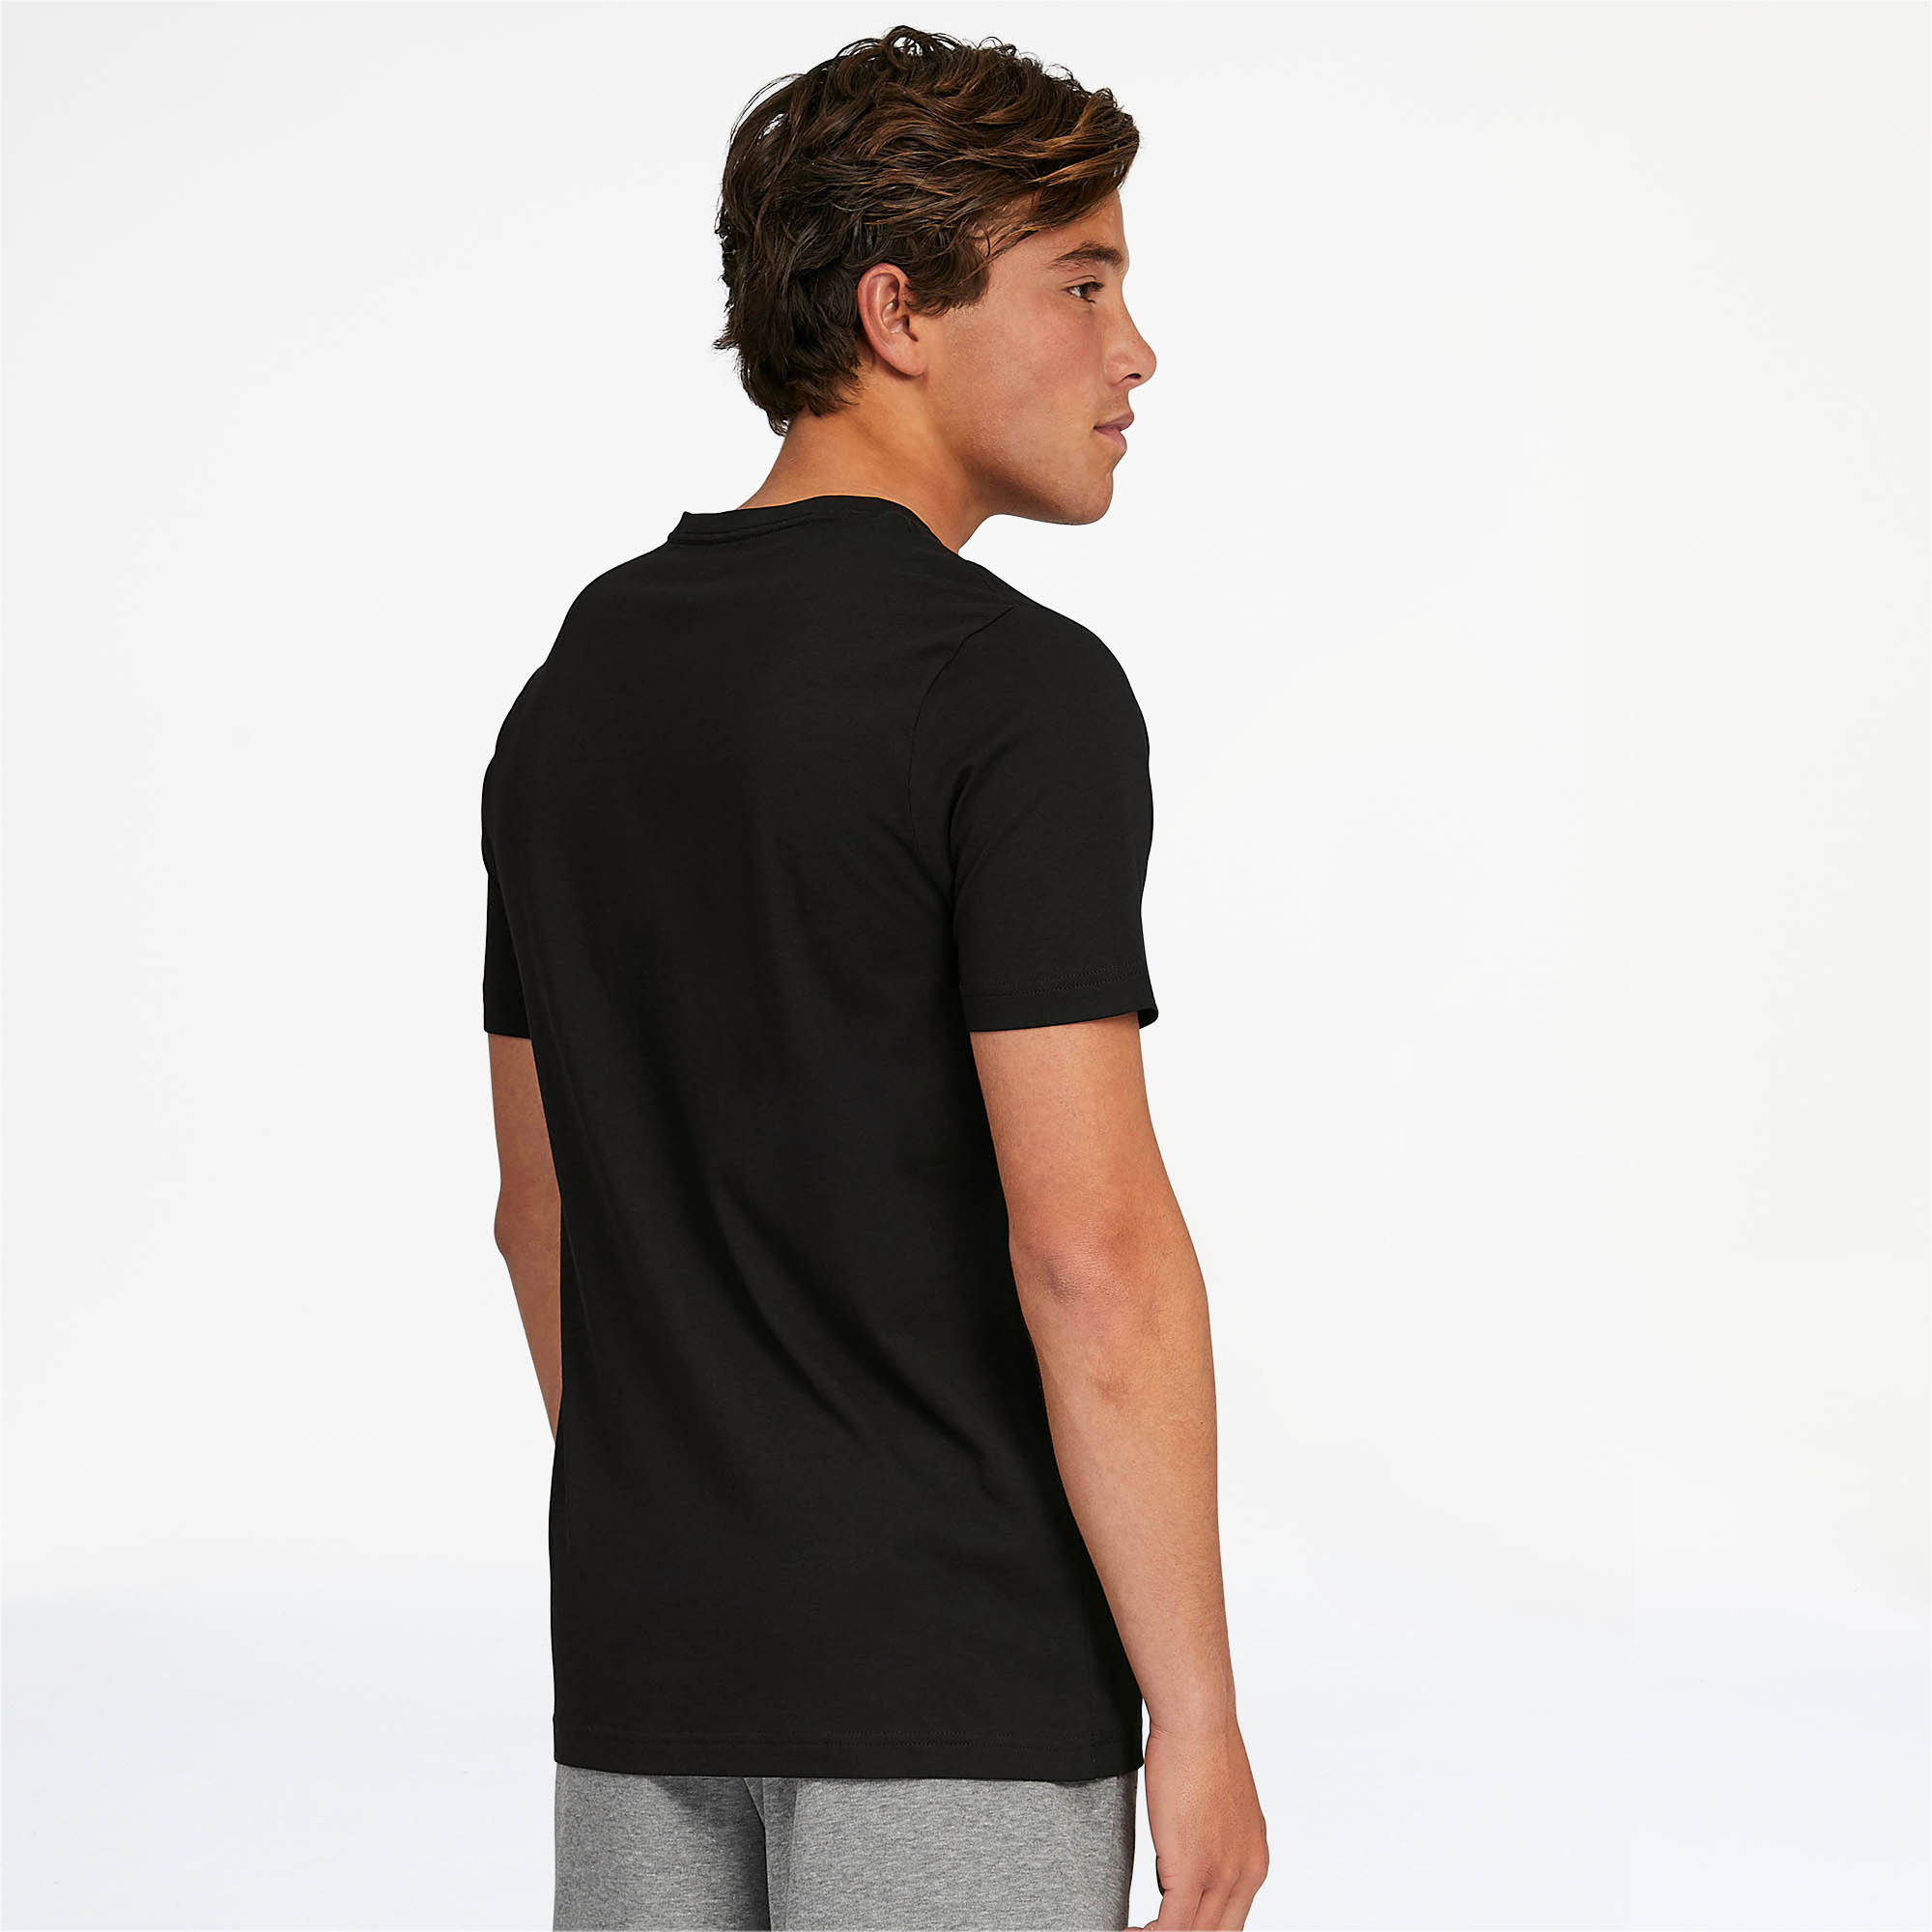 PUMA-Essentials-Men-039-s-V-Neck-Tee-Men-Tee-Basics thumbnail 8